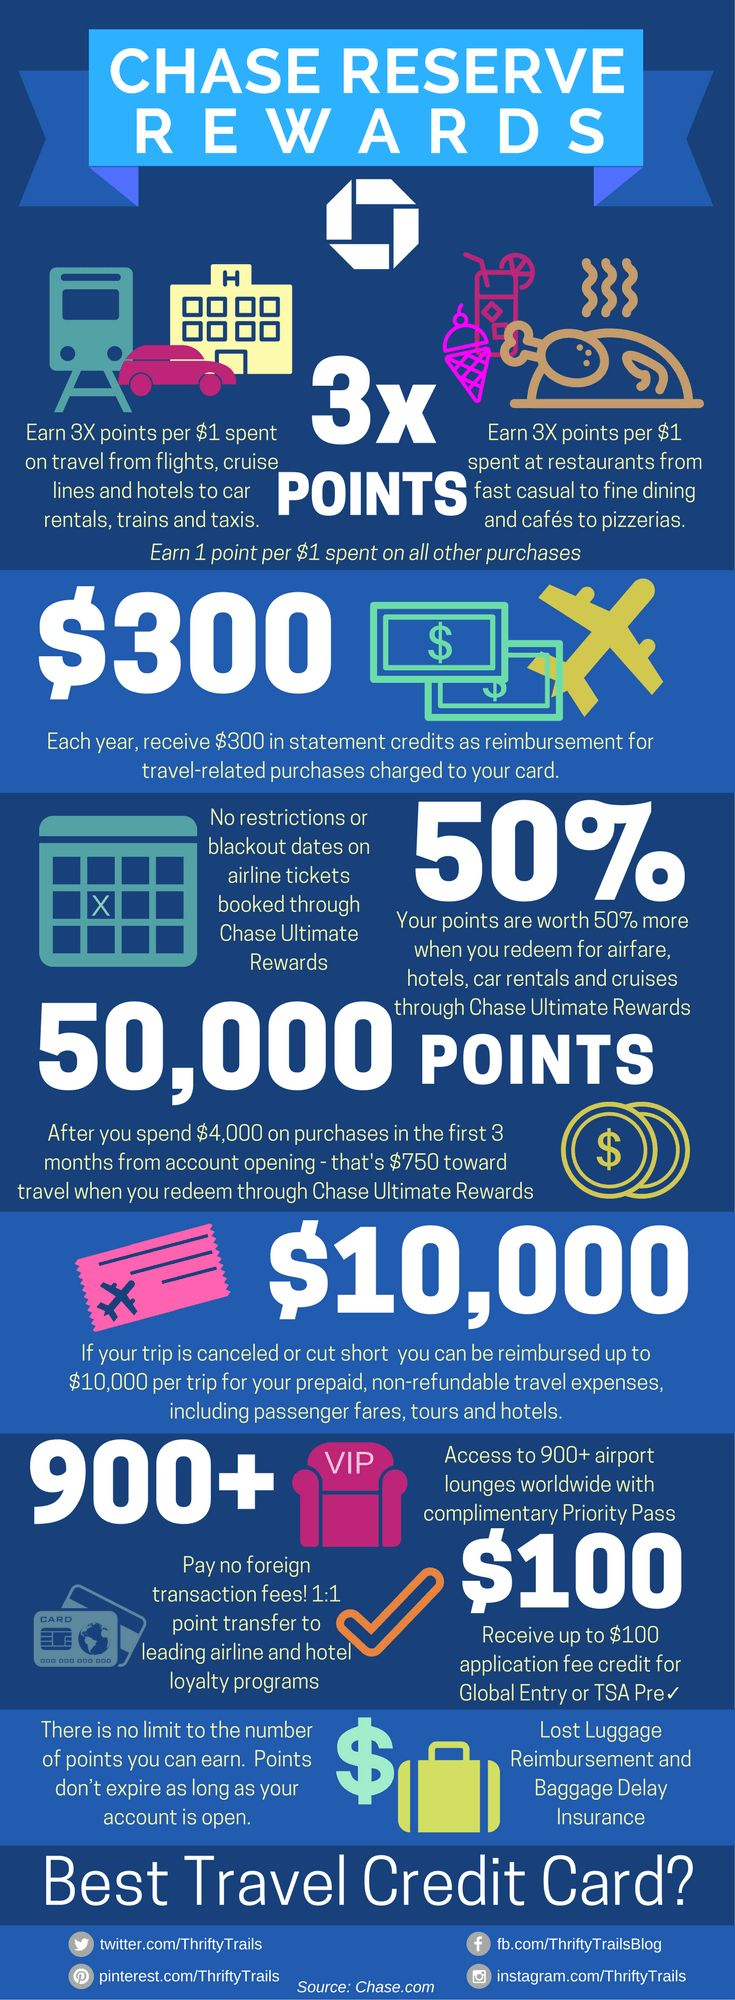 Chase Sapphire Reserve: Best Travel Credit Card Infographic. So many perks in getting this credit card if you travel often. Free access for airport lounges and $300 in travel credit annually are only 2 of the great perks.